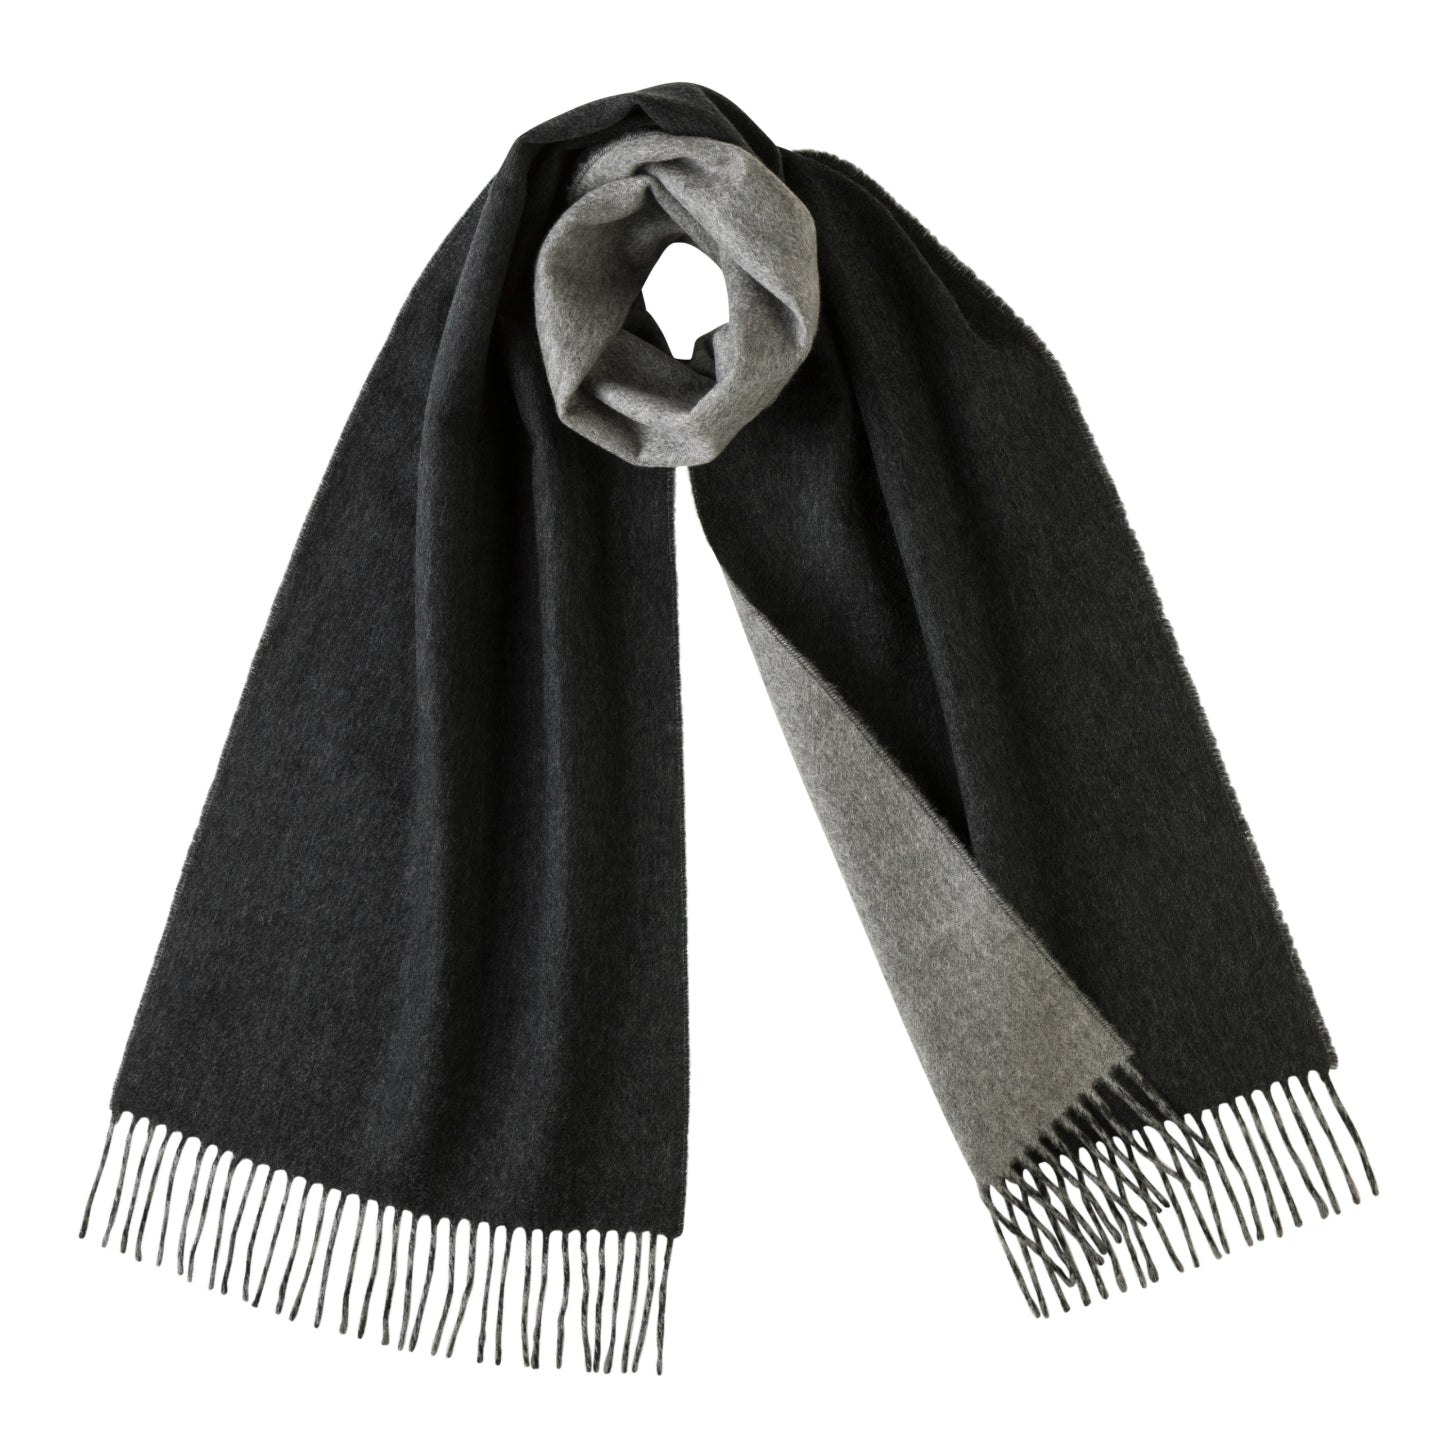 339b0e70ff87c8 ... Johnsons of Elgin | Johnstons Cashmere | Charcoal Grey Reversible  Cashmere Scarf | buy at The ...